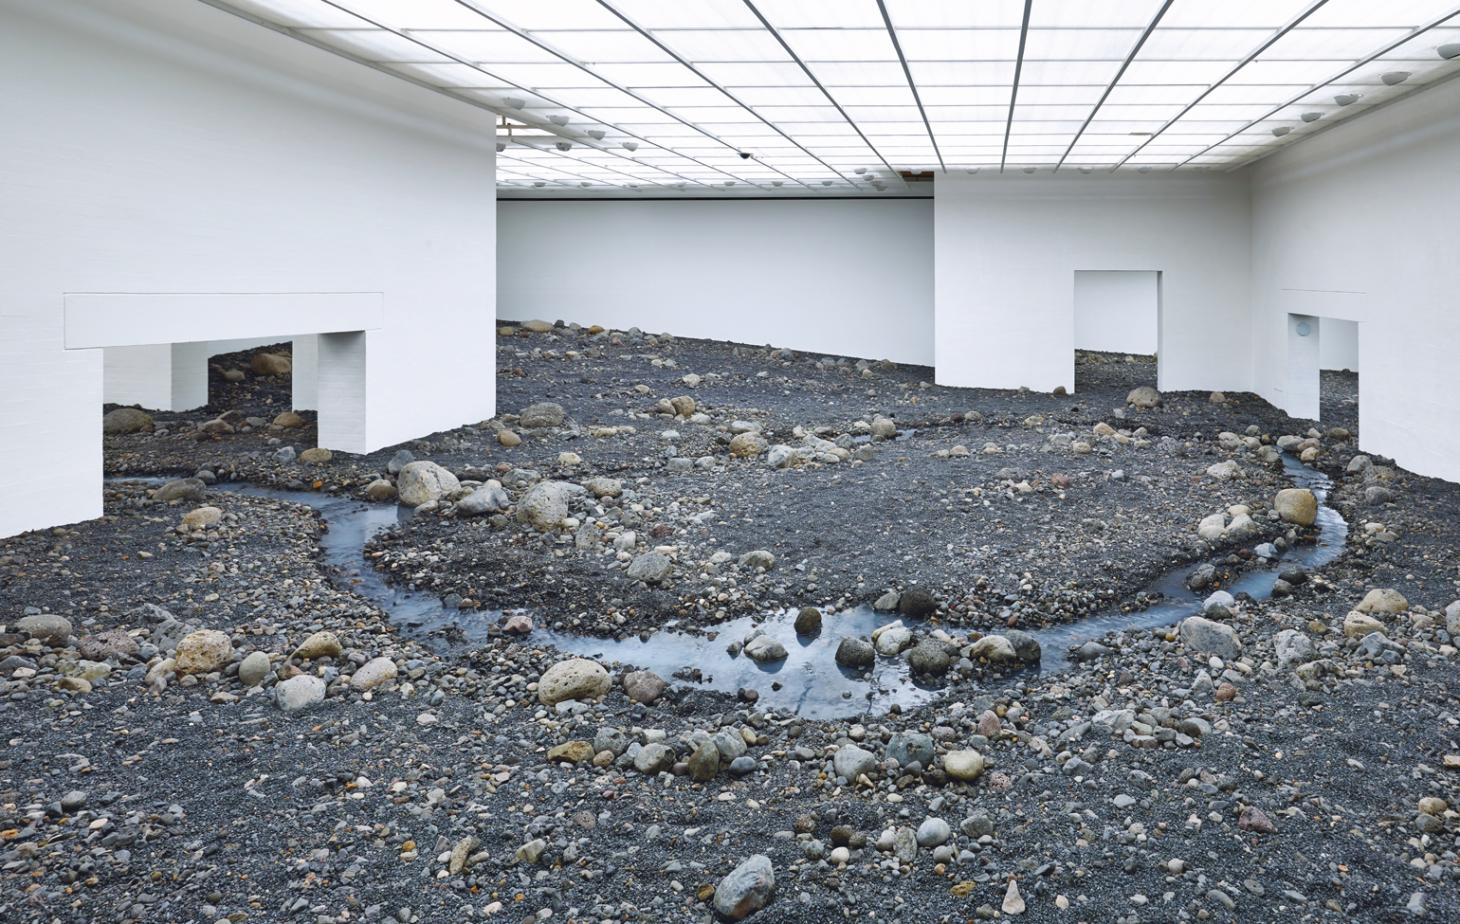 Olafur Eliasson as seen in the gallery, studio and real world